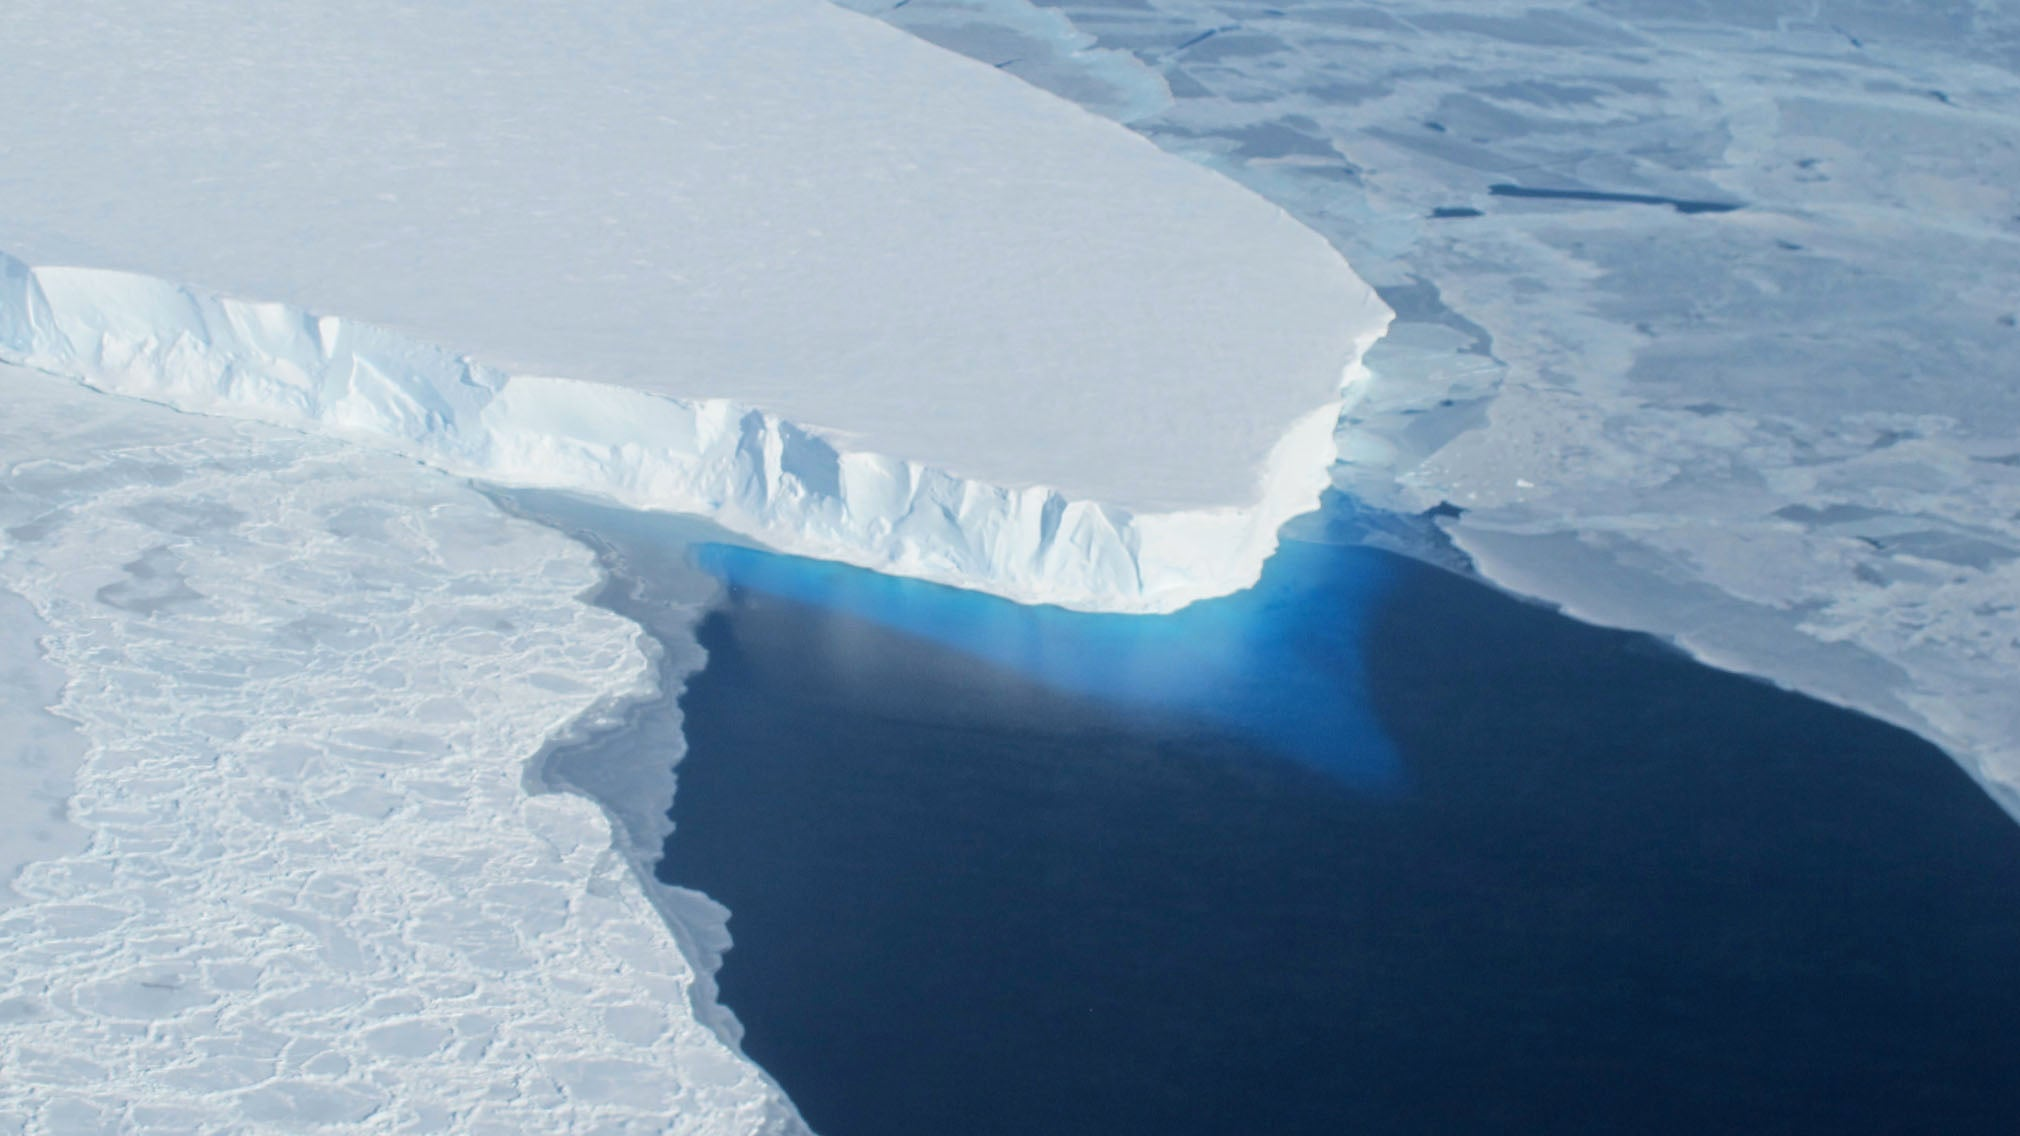 Scientists Propose Pumping Trillions of Tons of Snow onto Antarctic Ice to Stop Melting